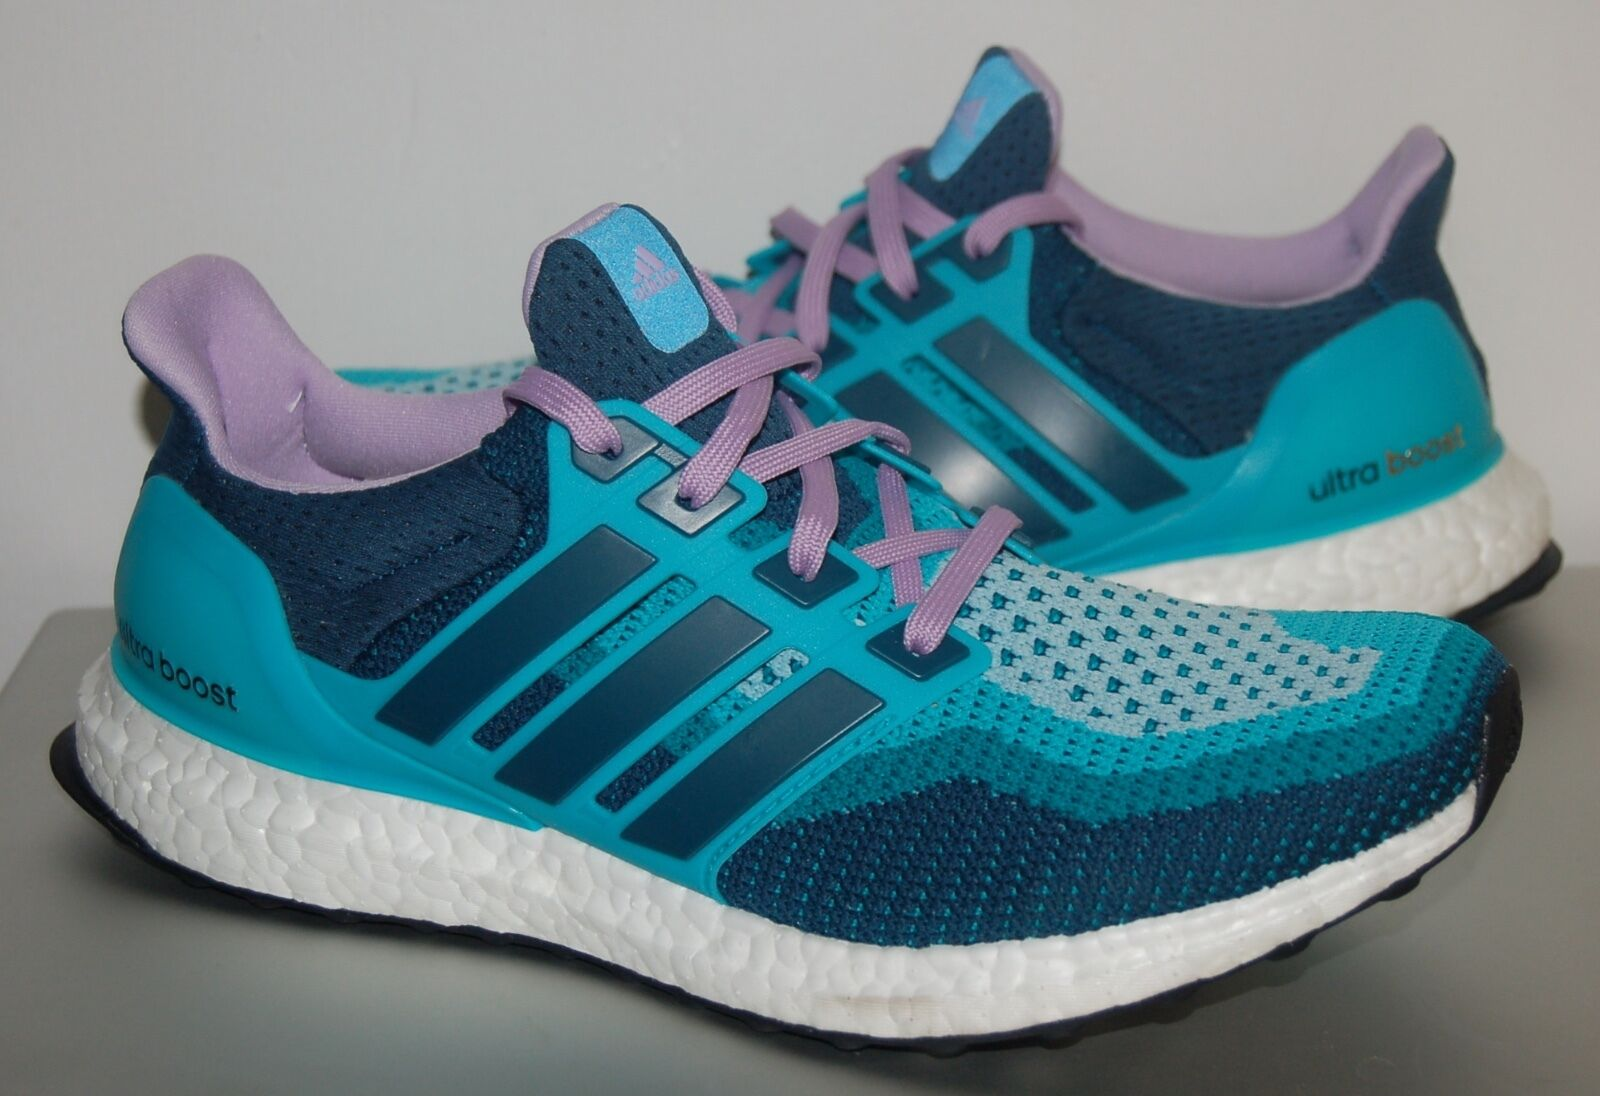 Adidas Women's Ultra  Boost Running shoes, AF5140, Clear Green, US Size 10.5  100% price guarantee